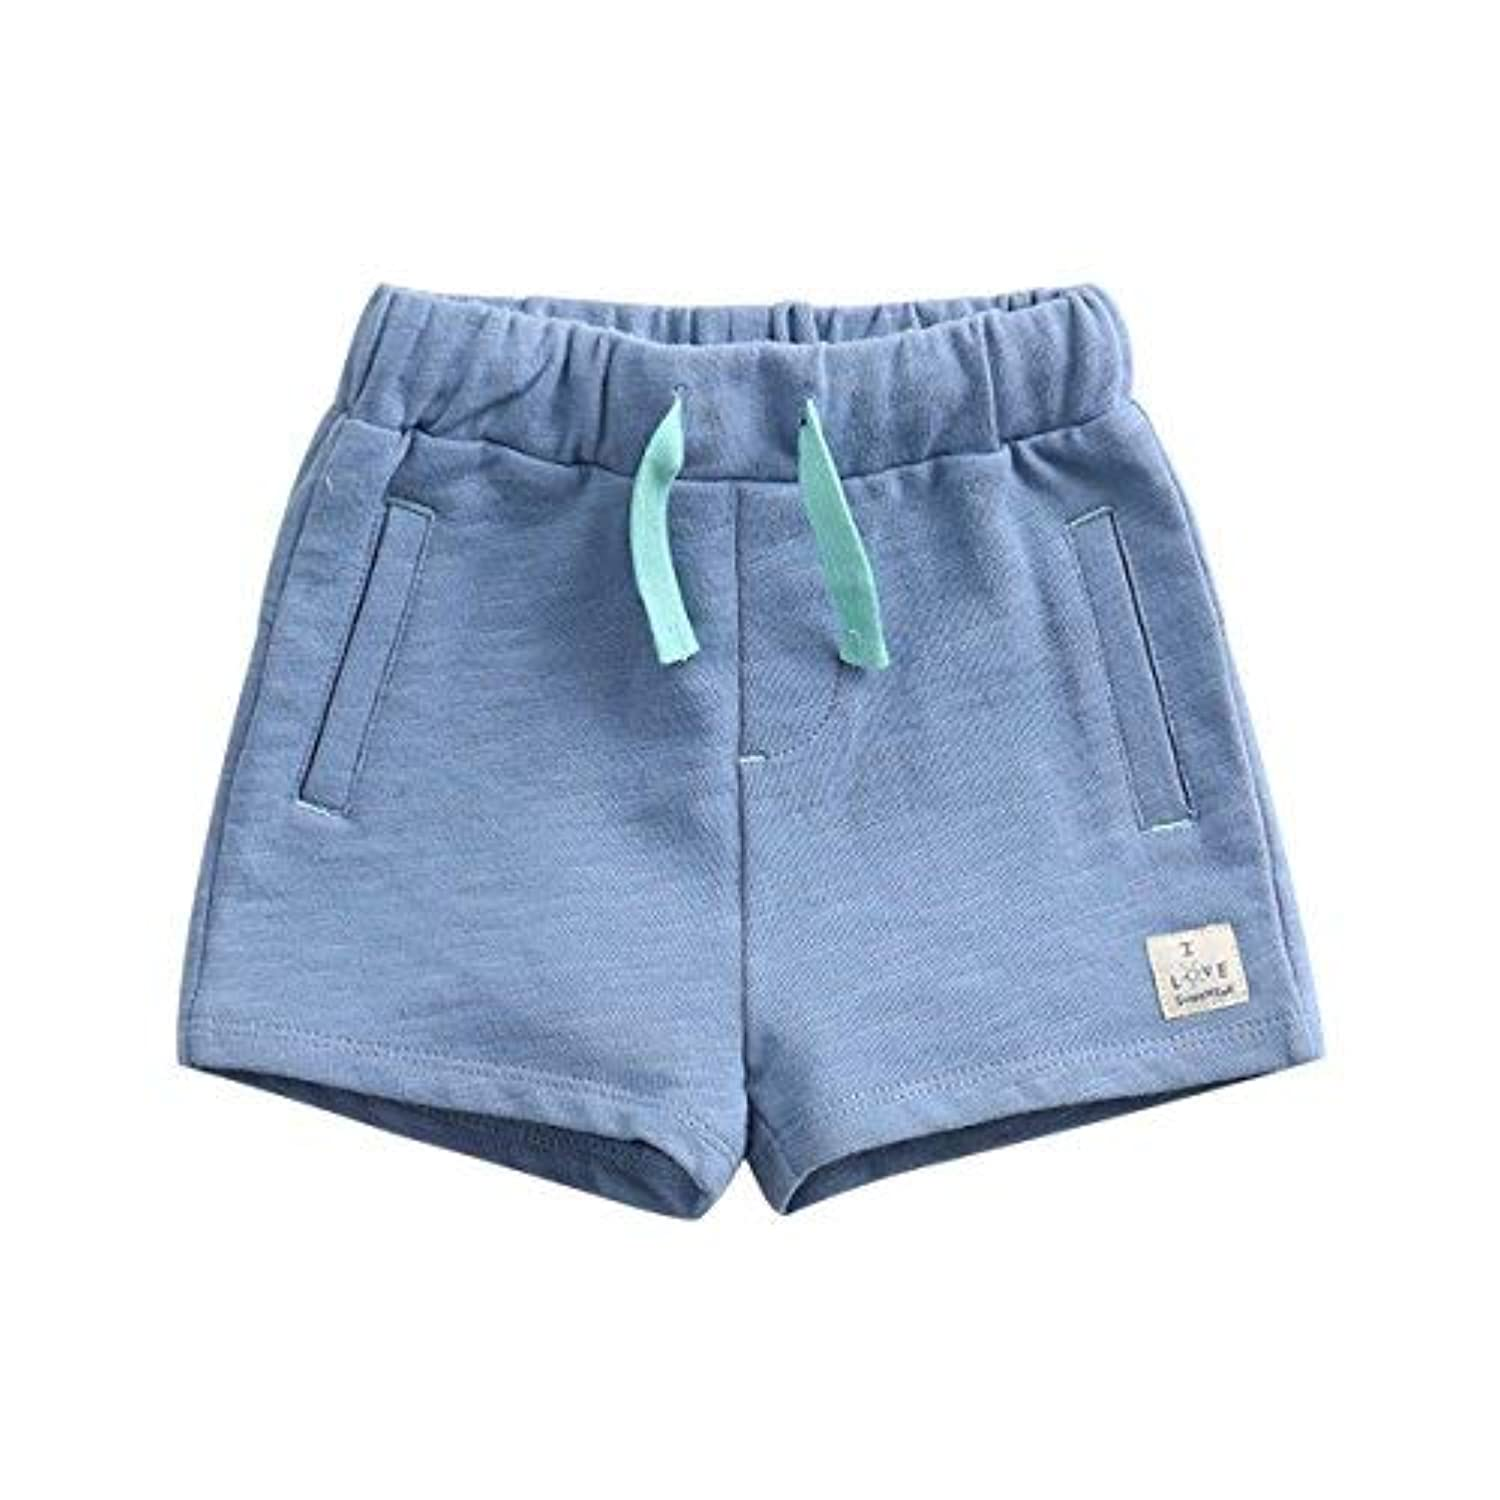 marc janie SHORTS ボーイズ